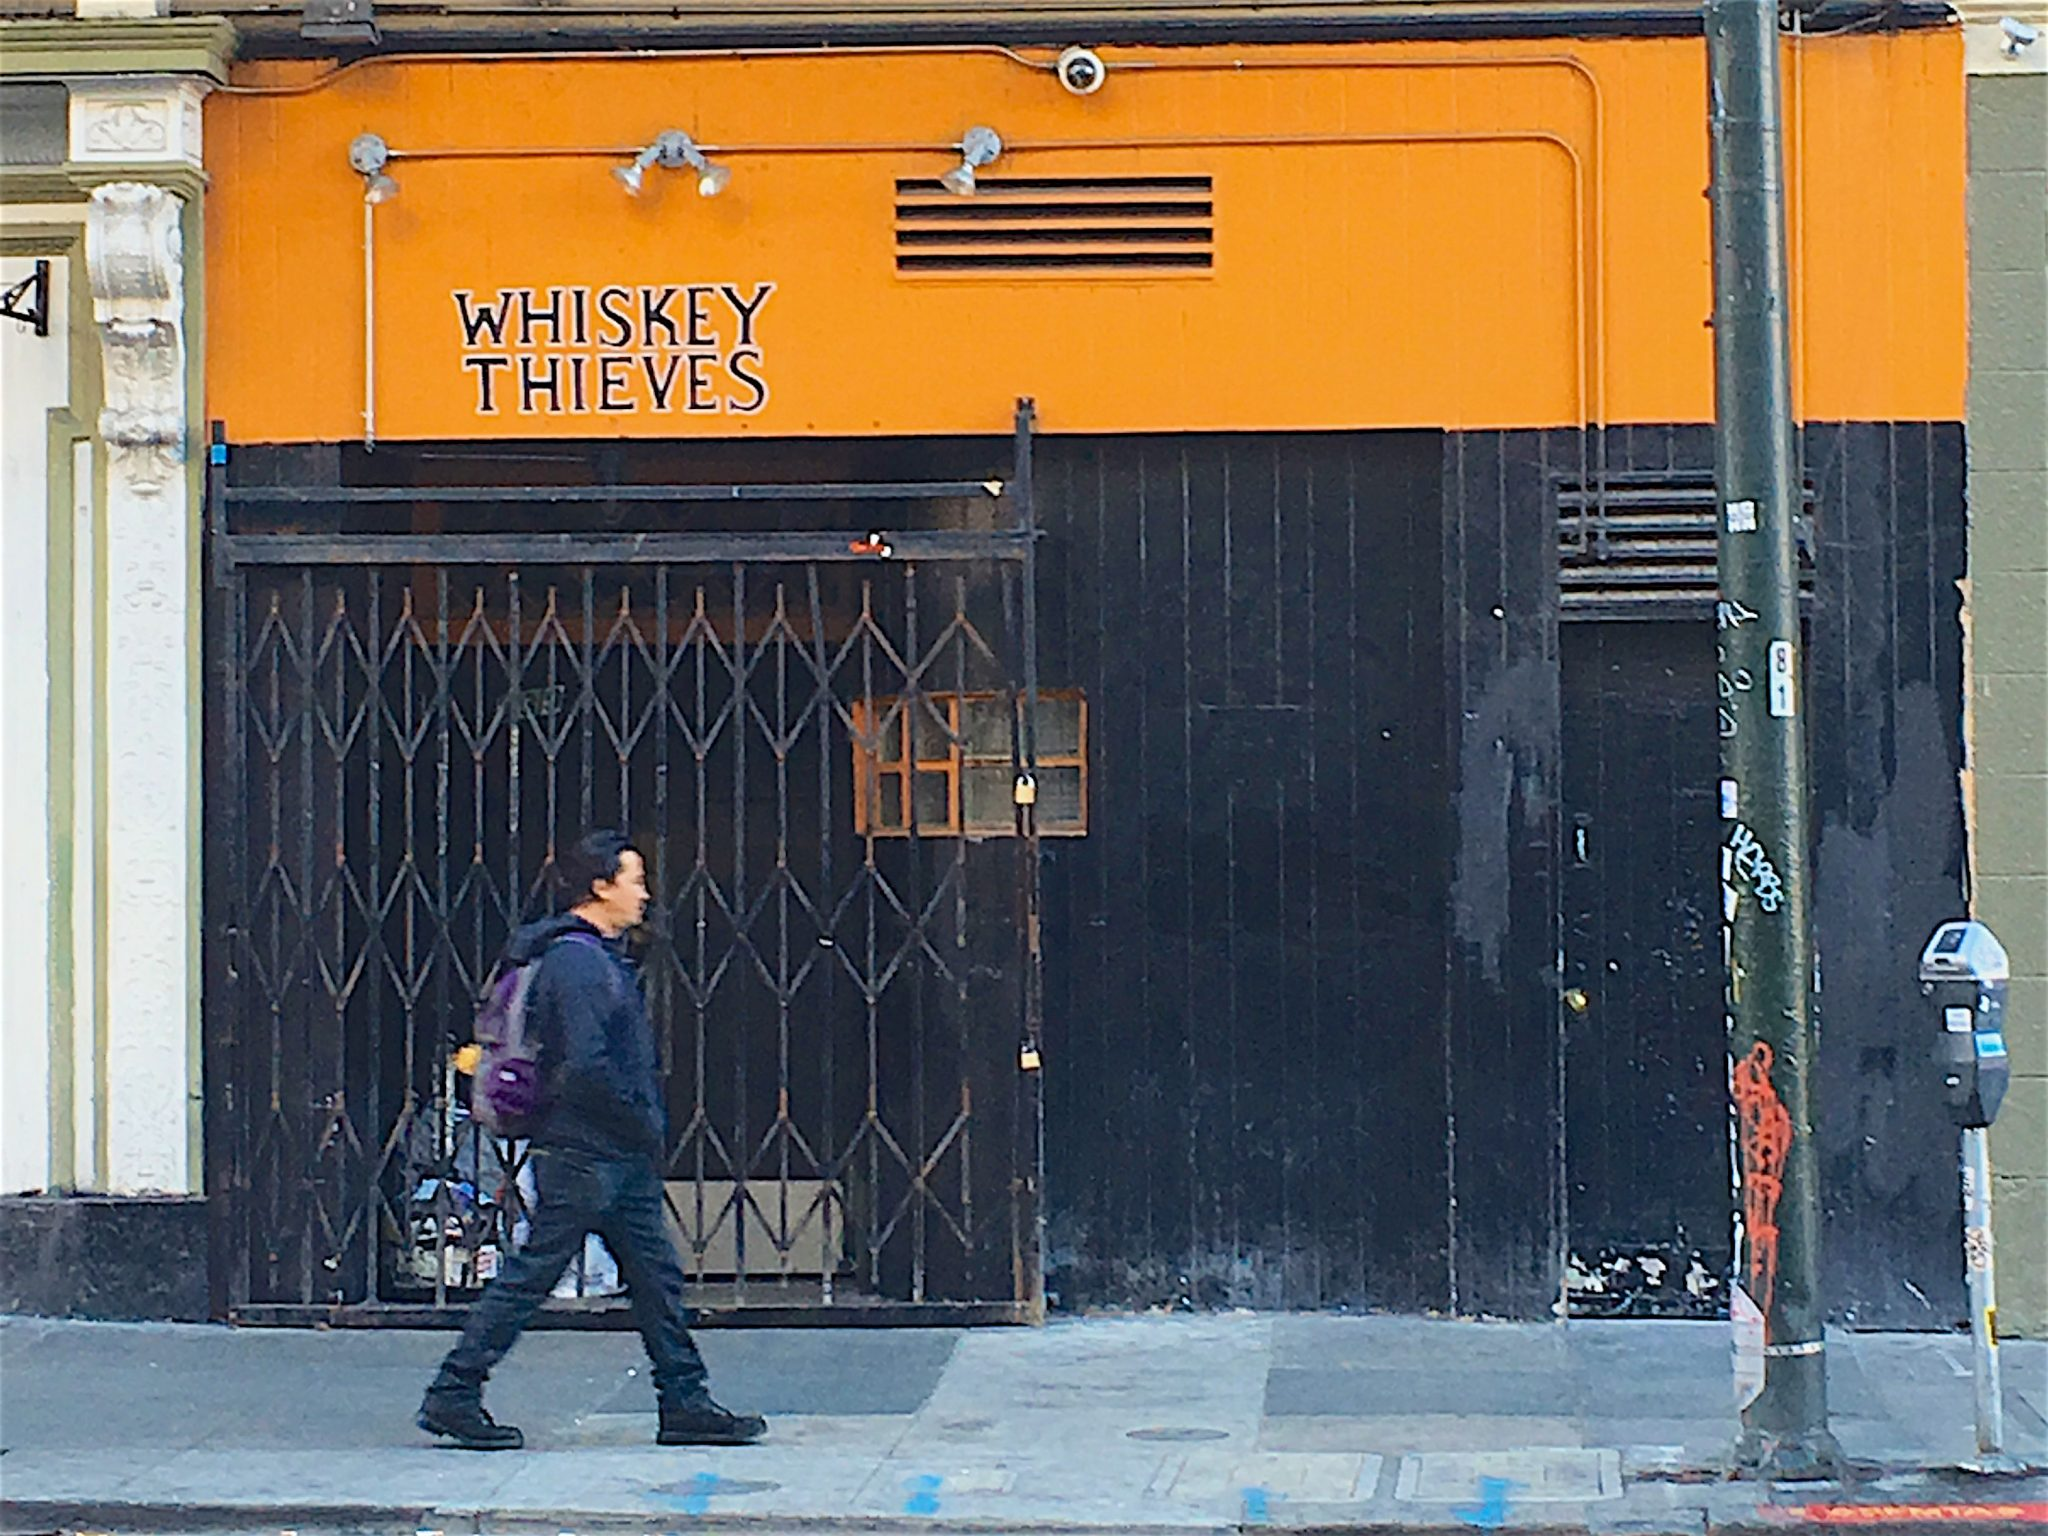 Whiskey thieves